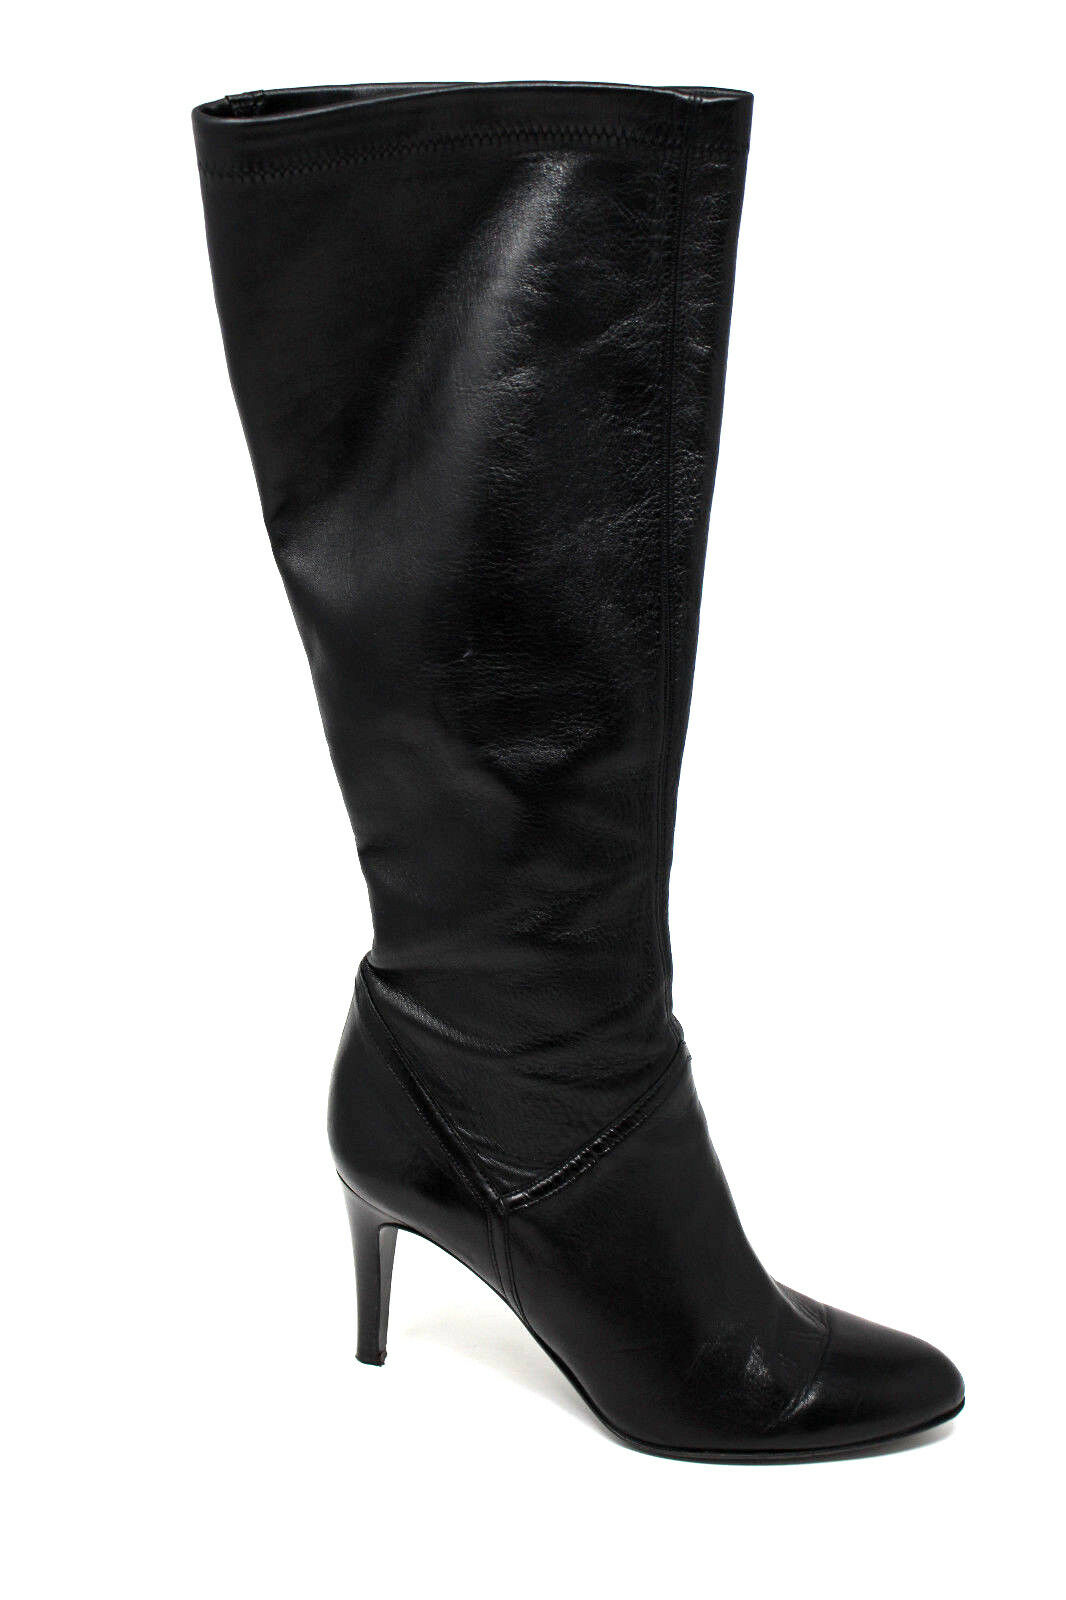 ab41de8bf48 Cole Haan Black Leather Womens Knee High Heel BOOTS Size 10 B for ...